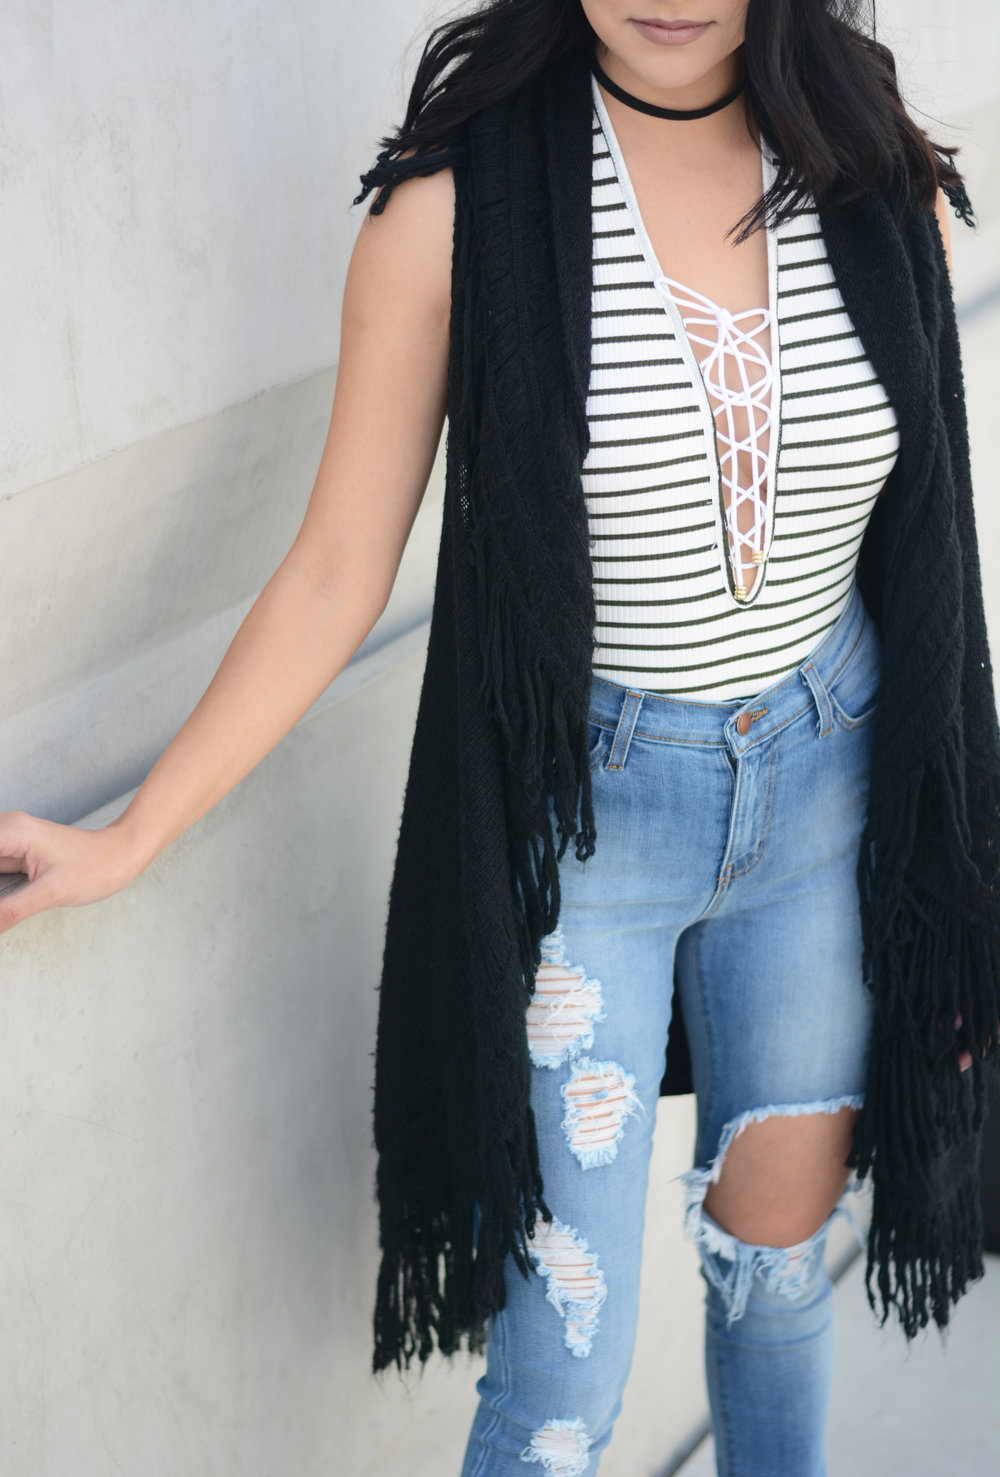 I layered my top with a fringe vest. It's perfect for this temperamental weather and it added a little play to my look.